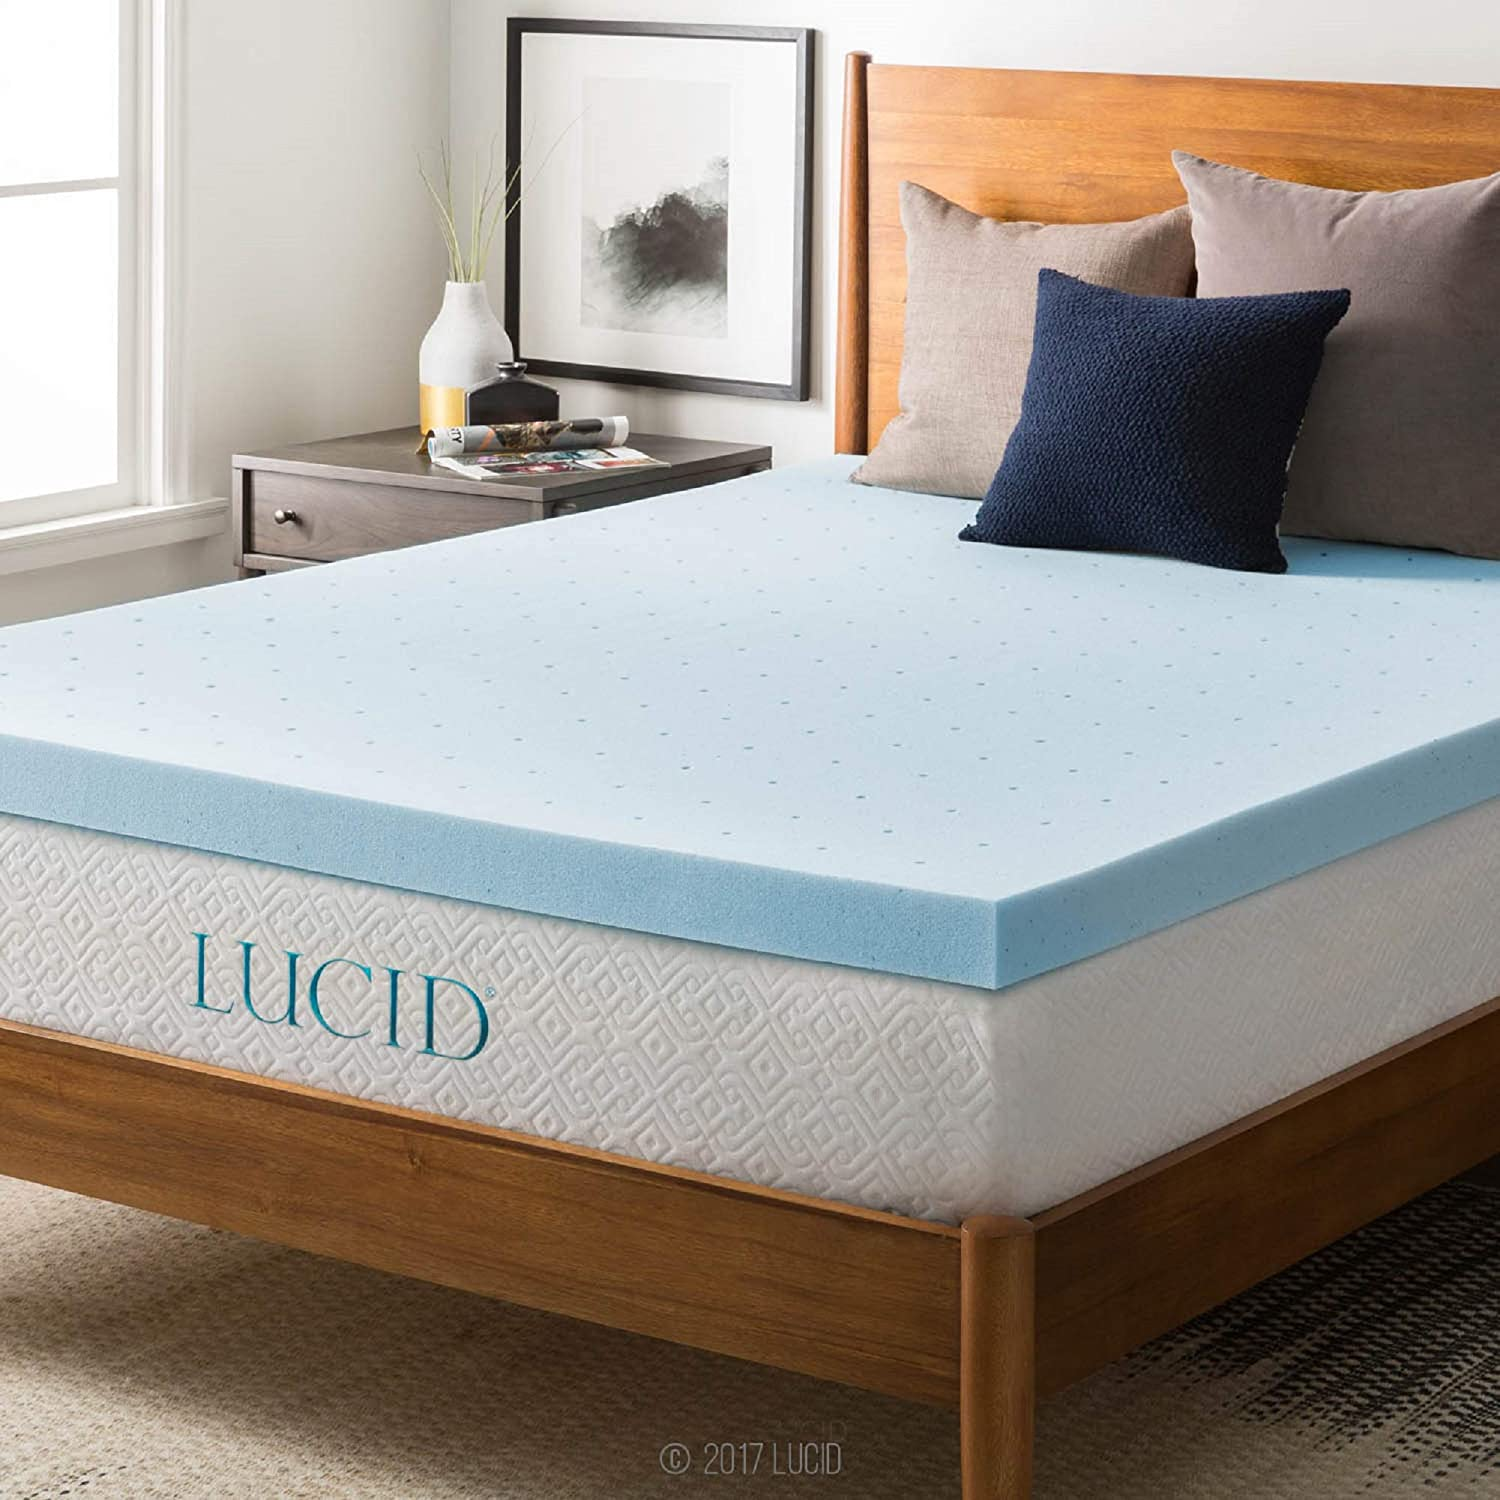 Lucid 3-inch Ventilated Gel Memory Foam Mattress Topper - Queen: Home & Kitchen